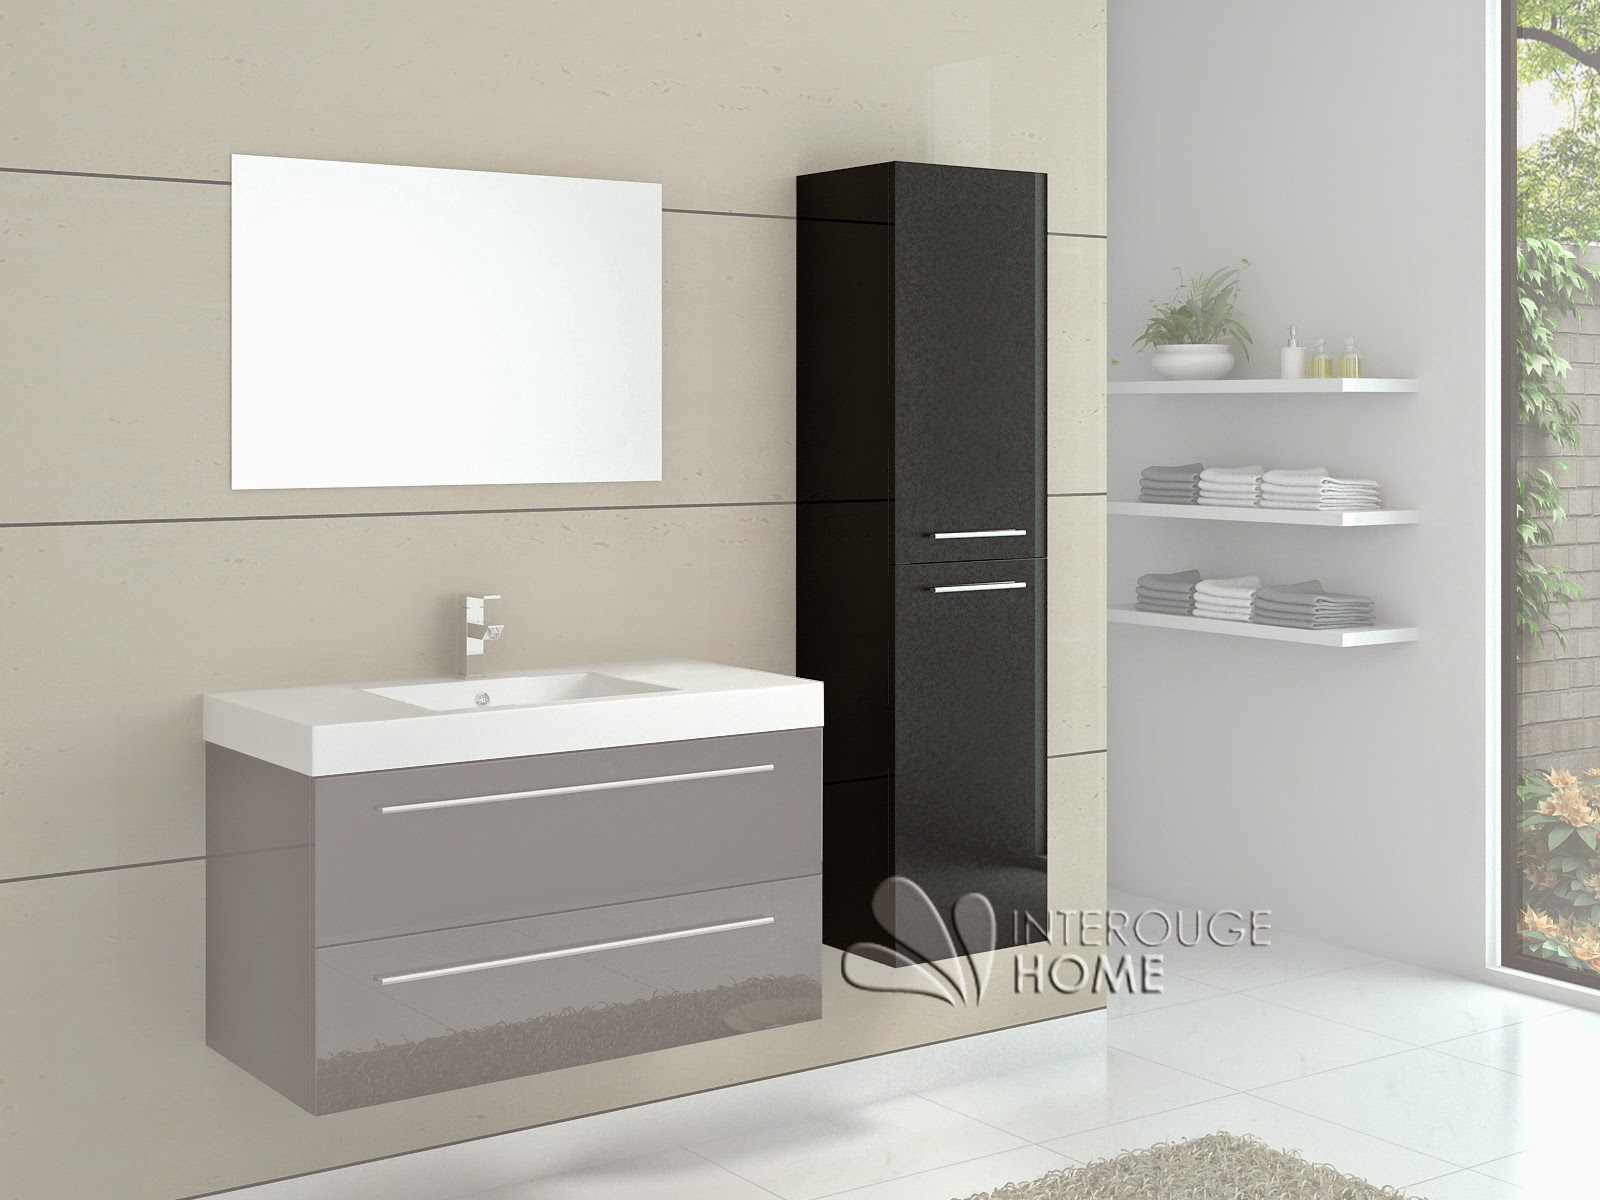 meuble rangement salle de bain noir meuble d coration maison. Black Bedroom Furniture Sets. Home Design Ideas